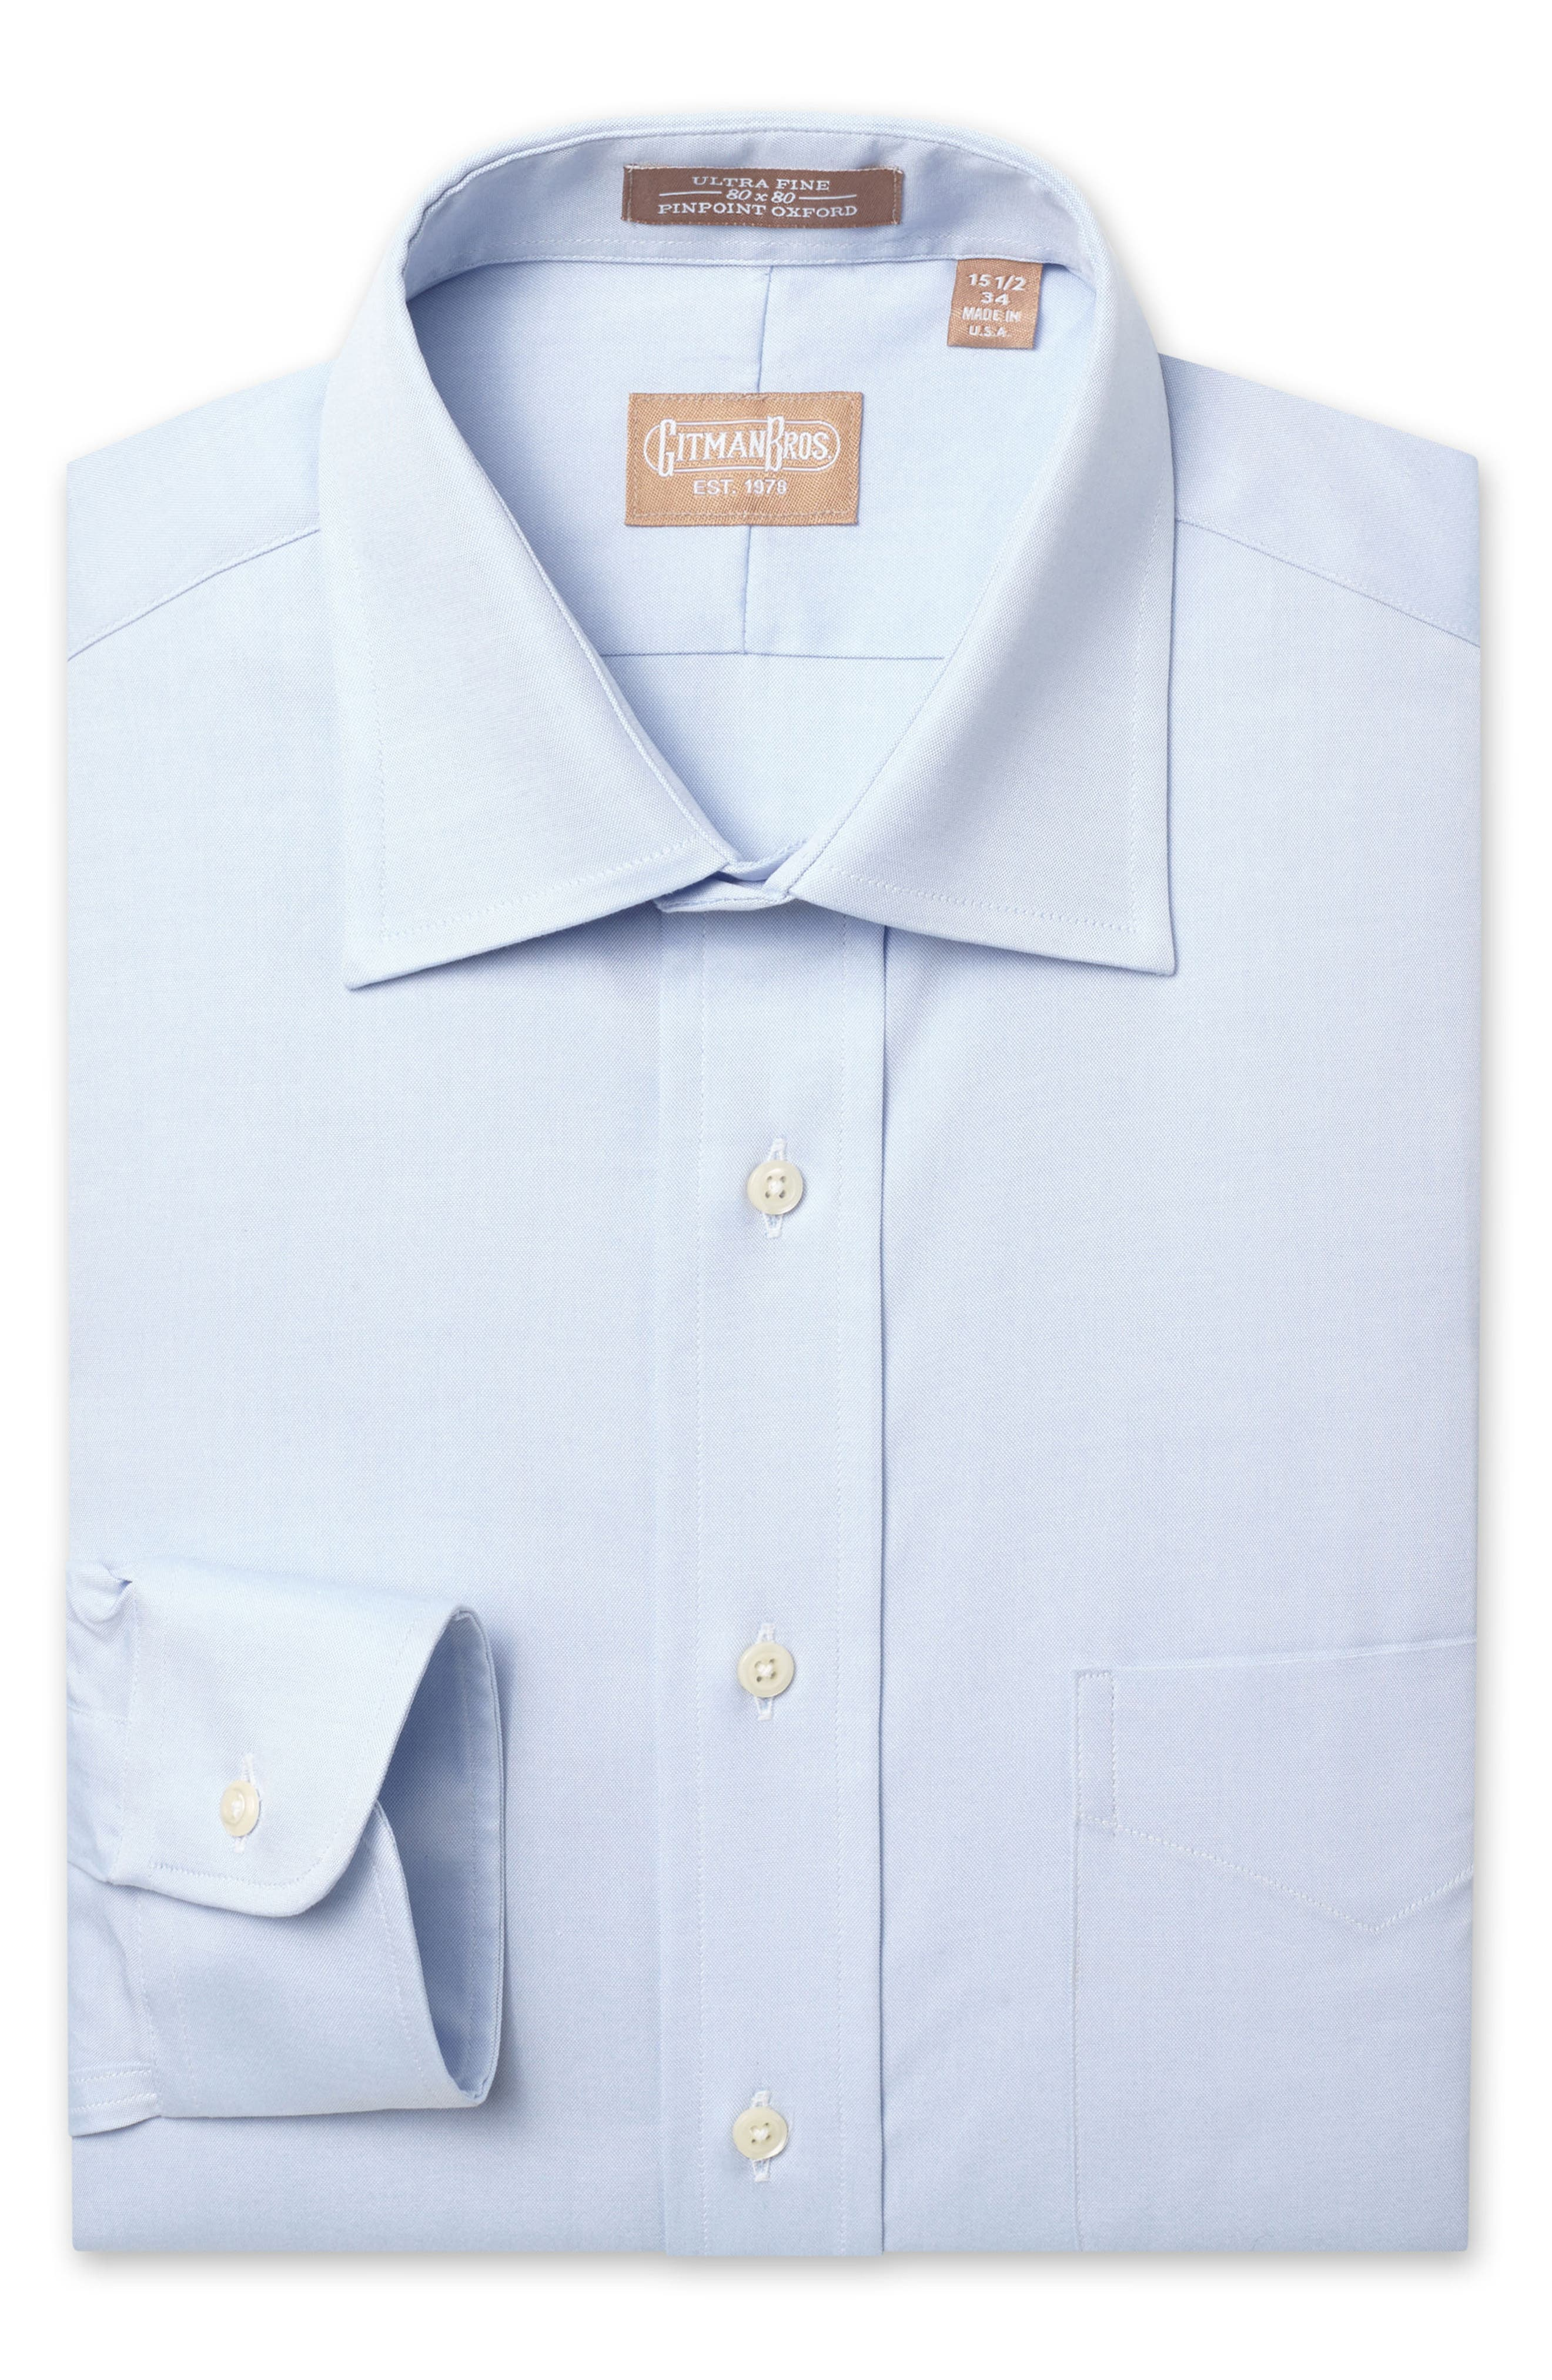 Regular Fit Pinpoint Cotton Oxford Point Collar Dress Shirt,                         Main,                         color, LIGHT BLUE